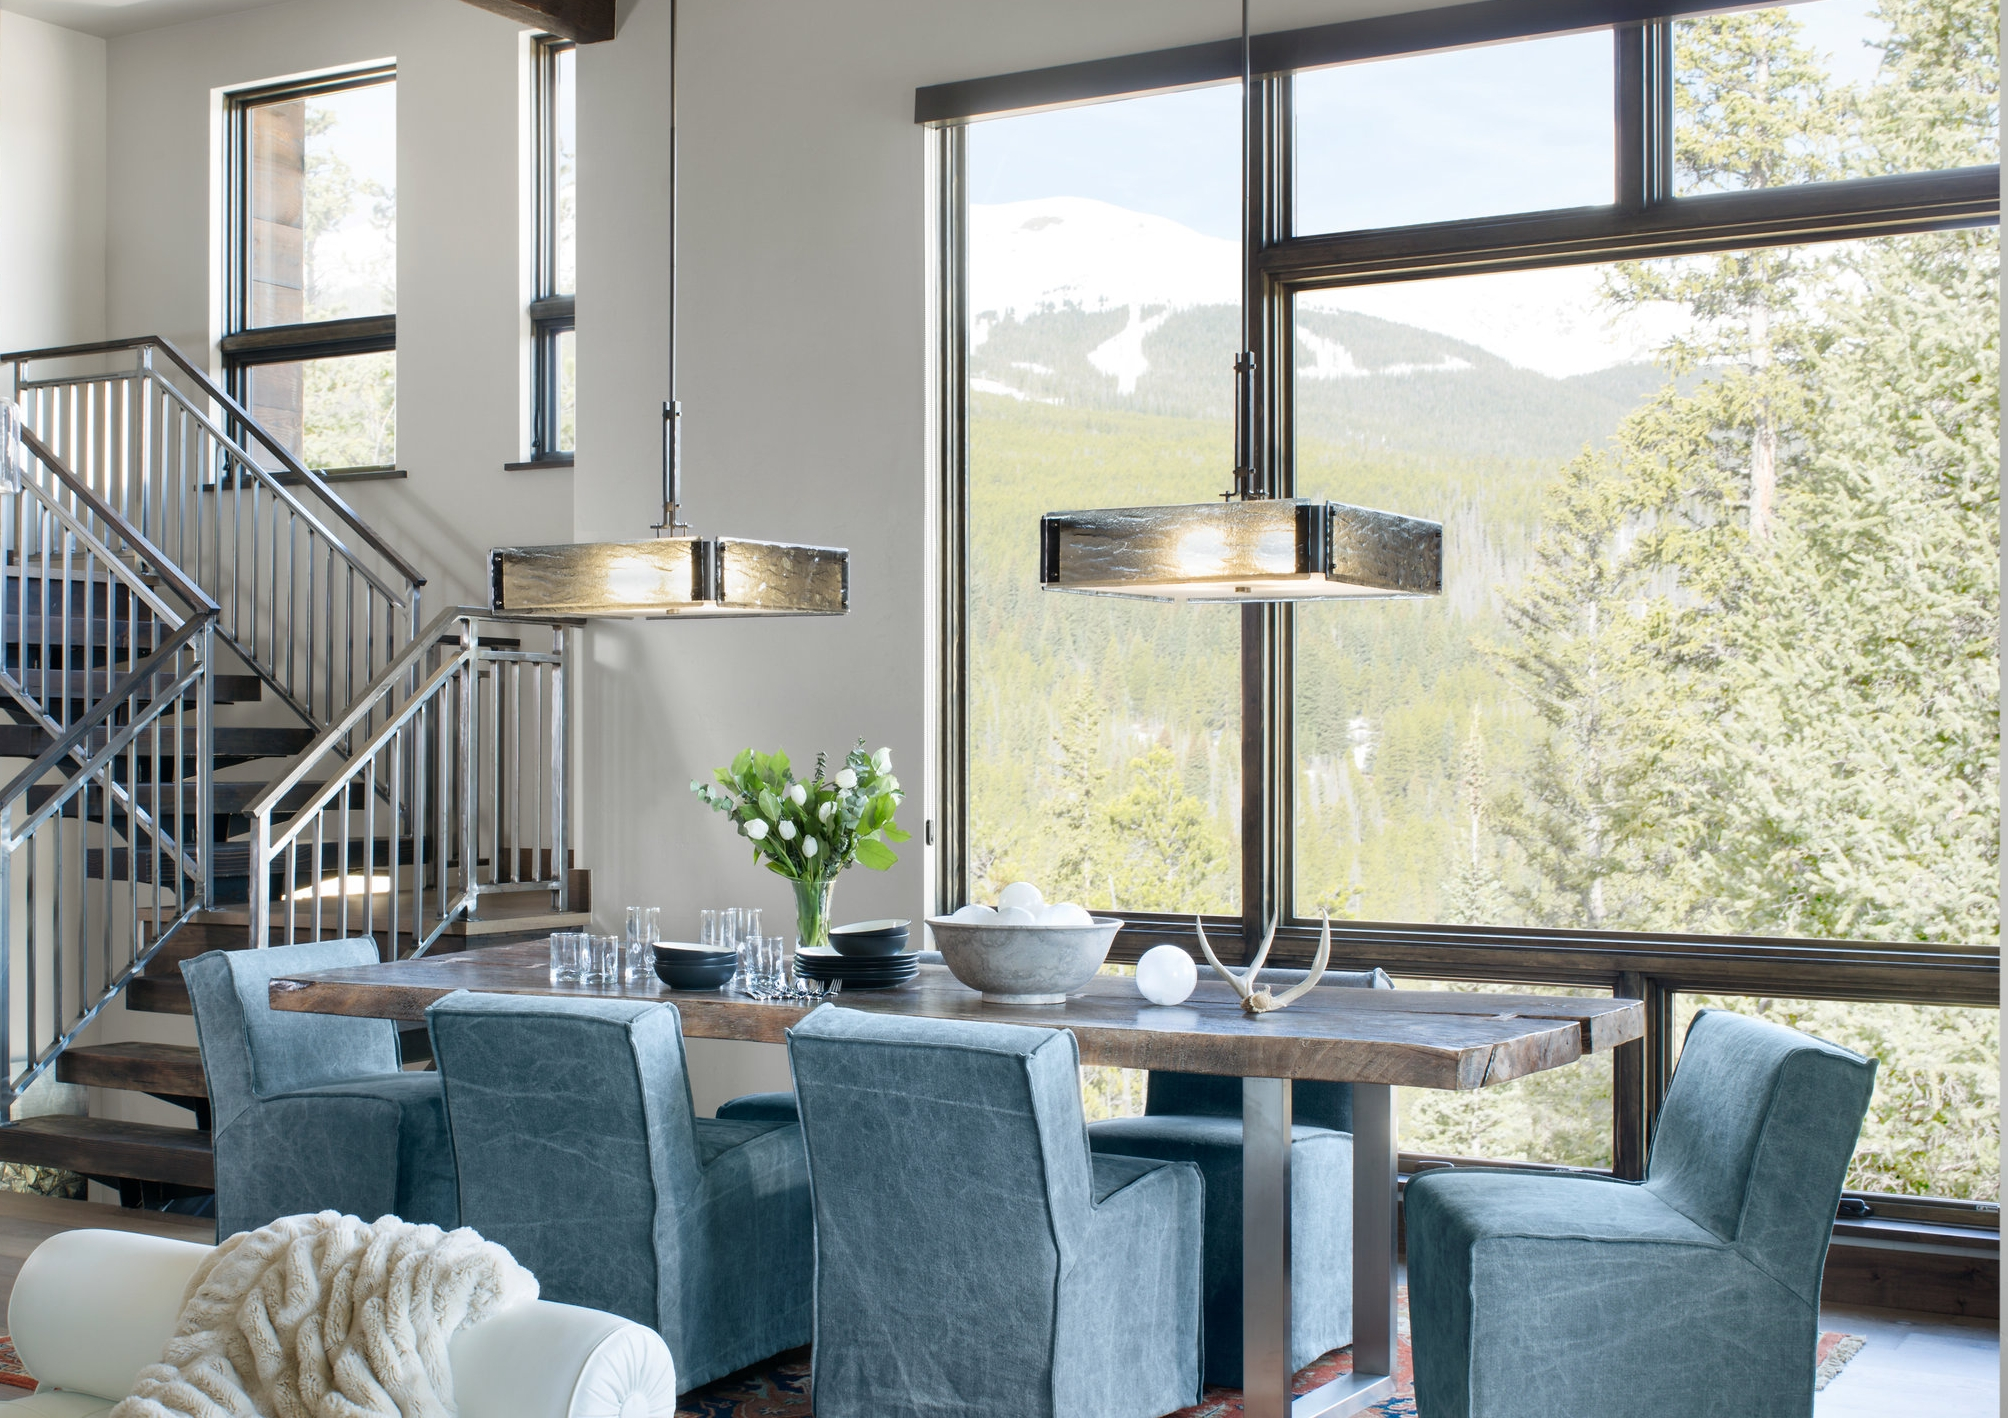 Two Hammerton Studio Urban Loft square chandeliers over a rustic contemporary mountain dining table. By PInnacle Design Studio | Frisco, CO